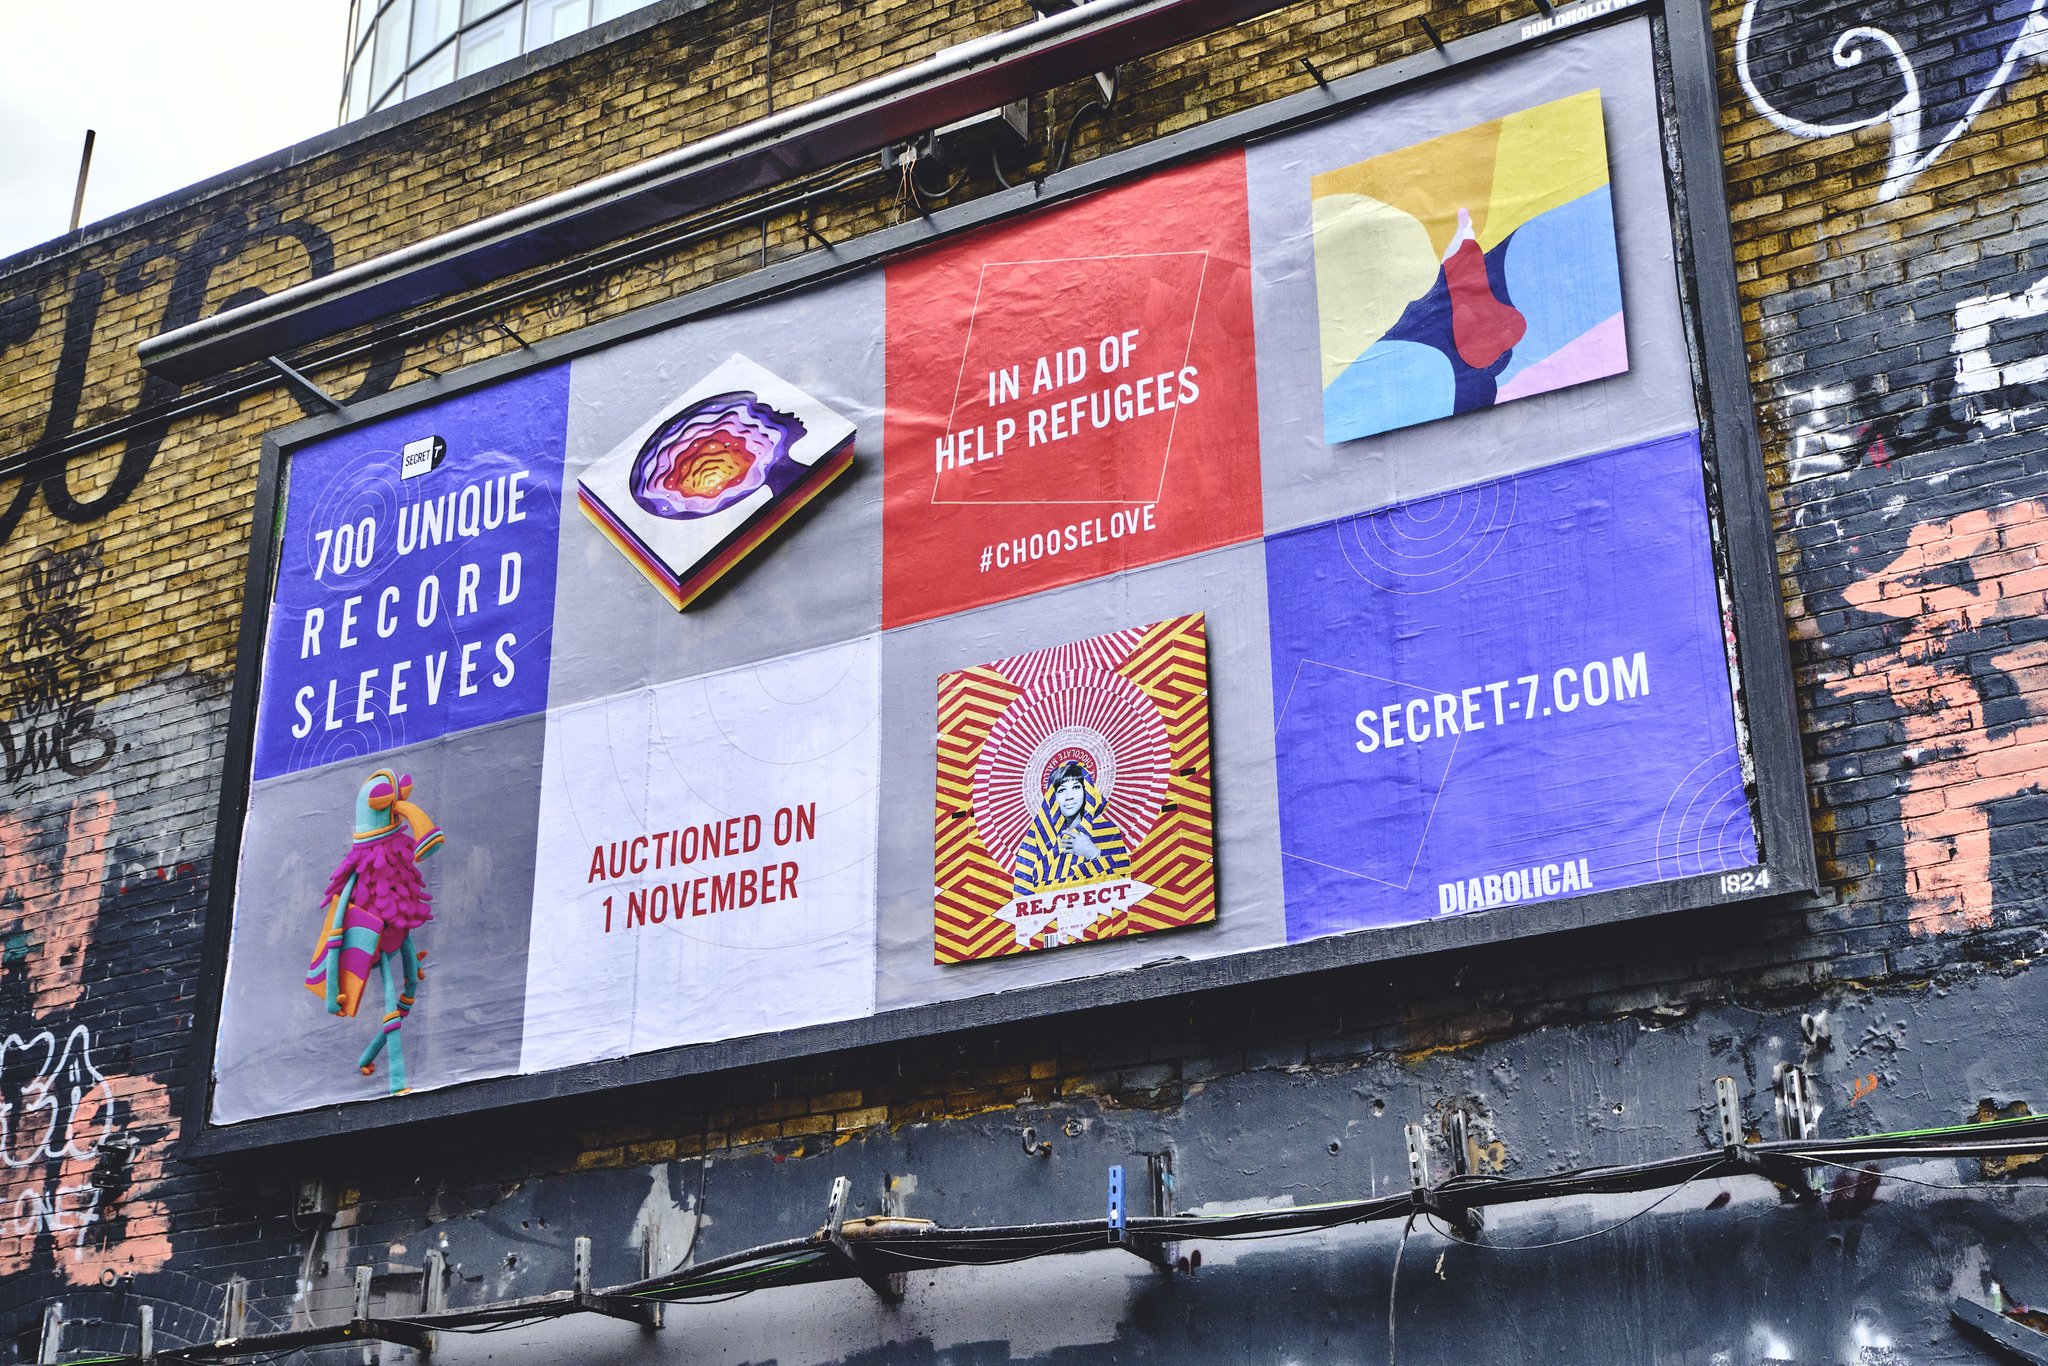 "Secret7"" billboard on a graffitied wall in london"